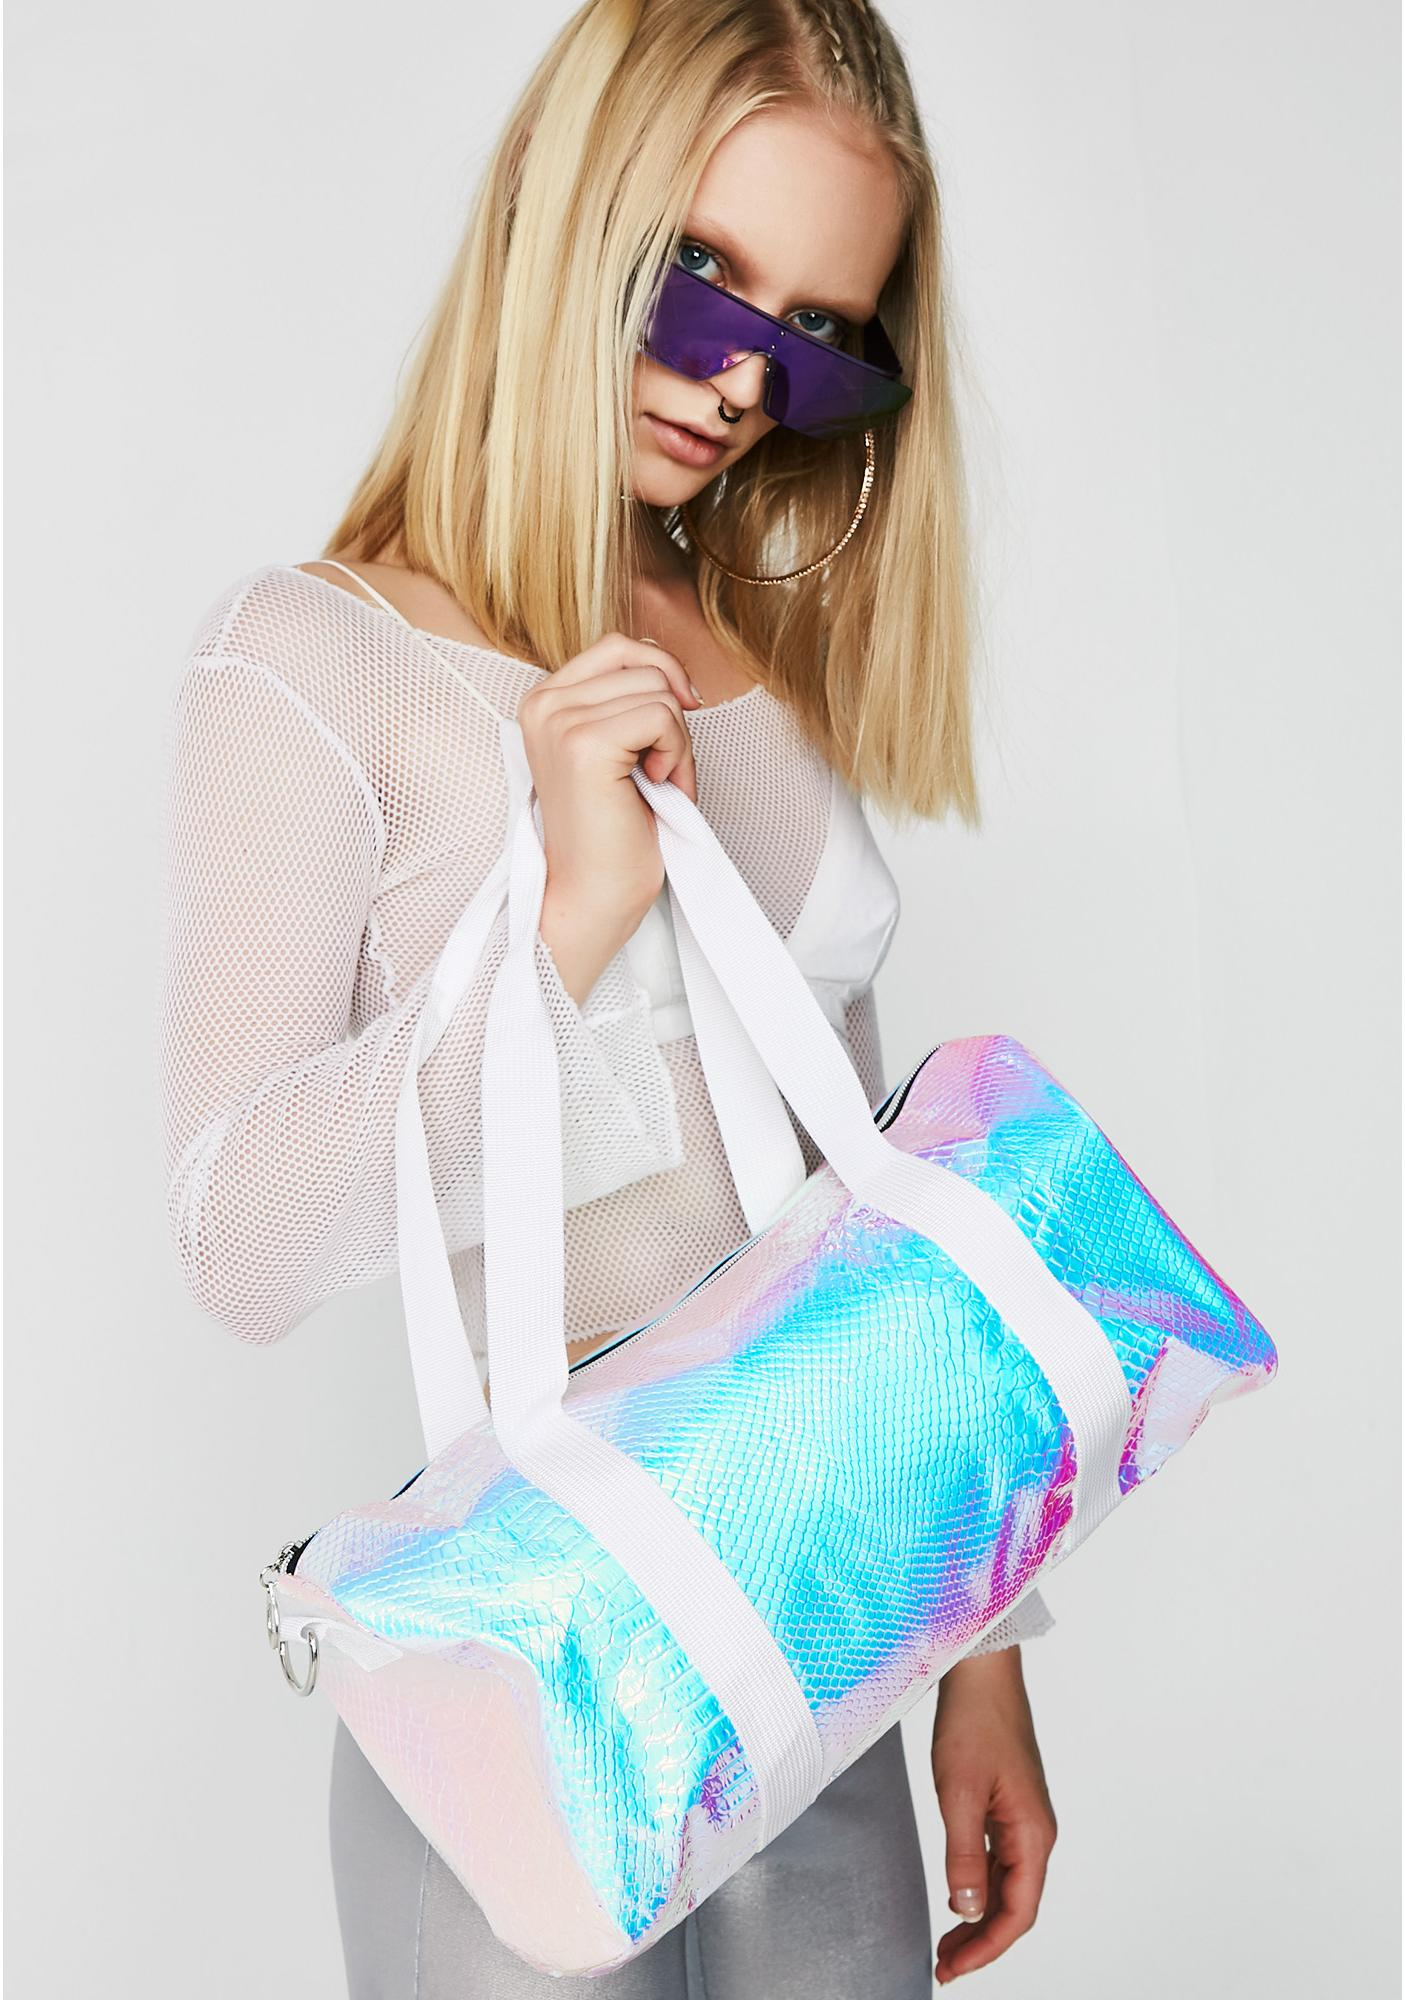 Illuminated Jungle Gym Bag